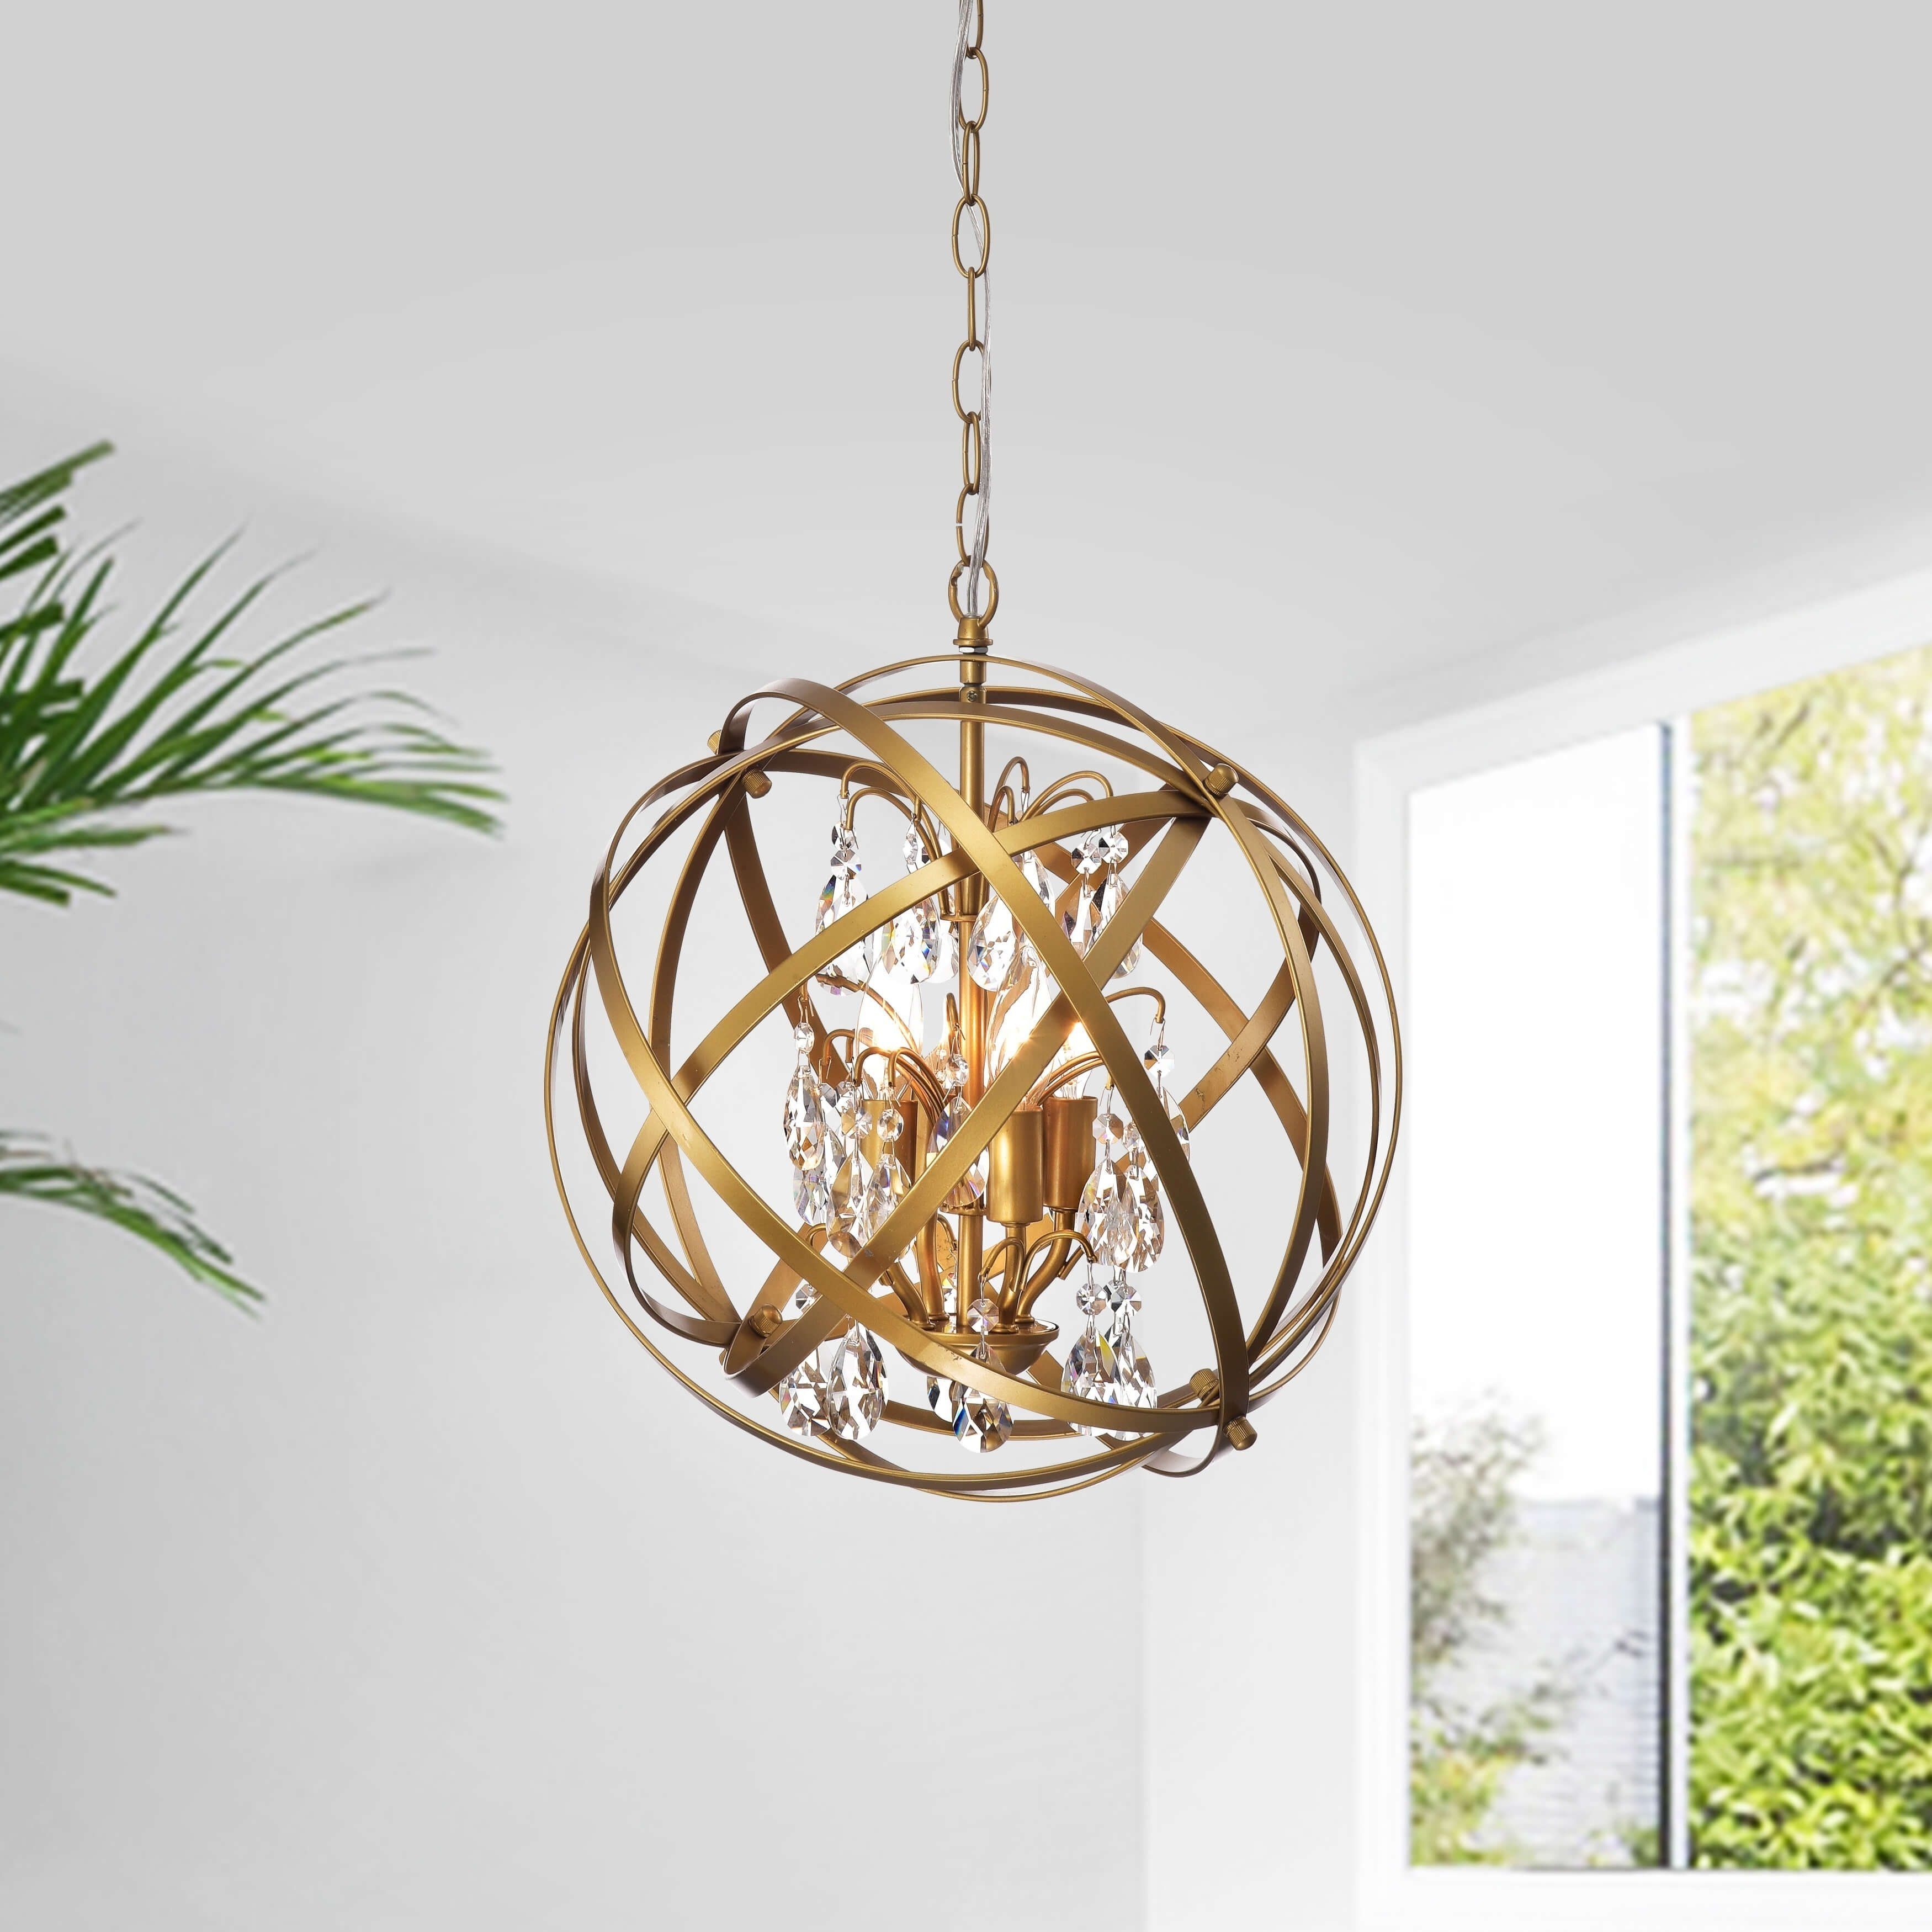 Benita Light Gold 3 Light Metal Grey Globe Crystal Chandelier